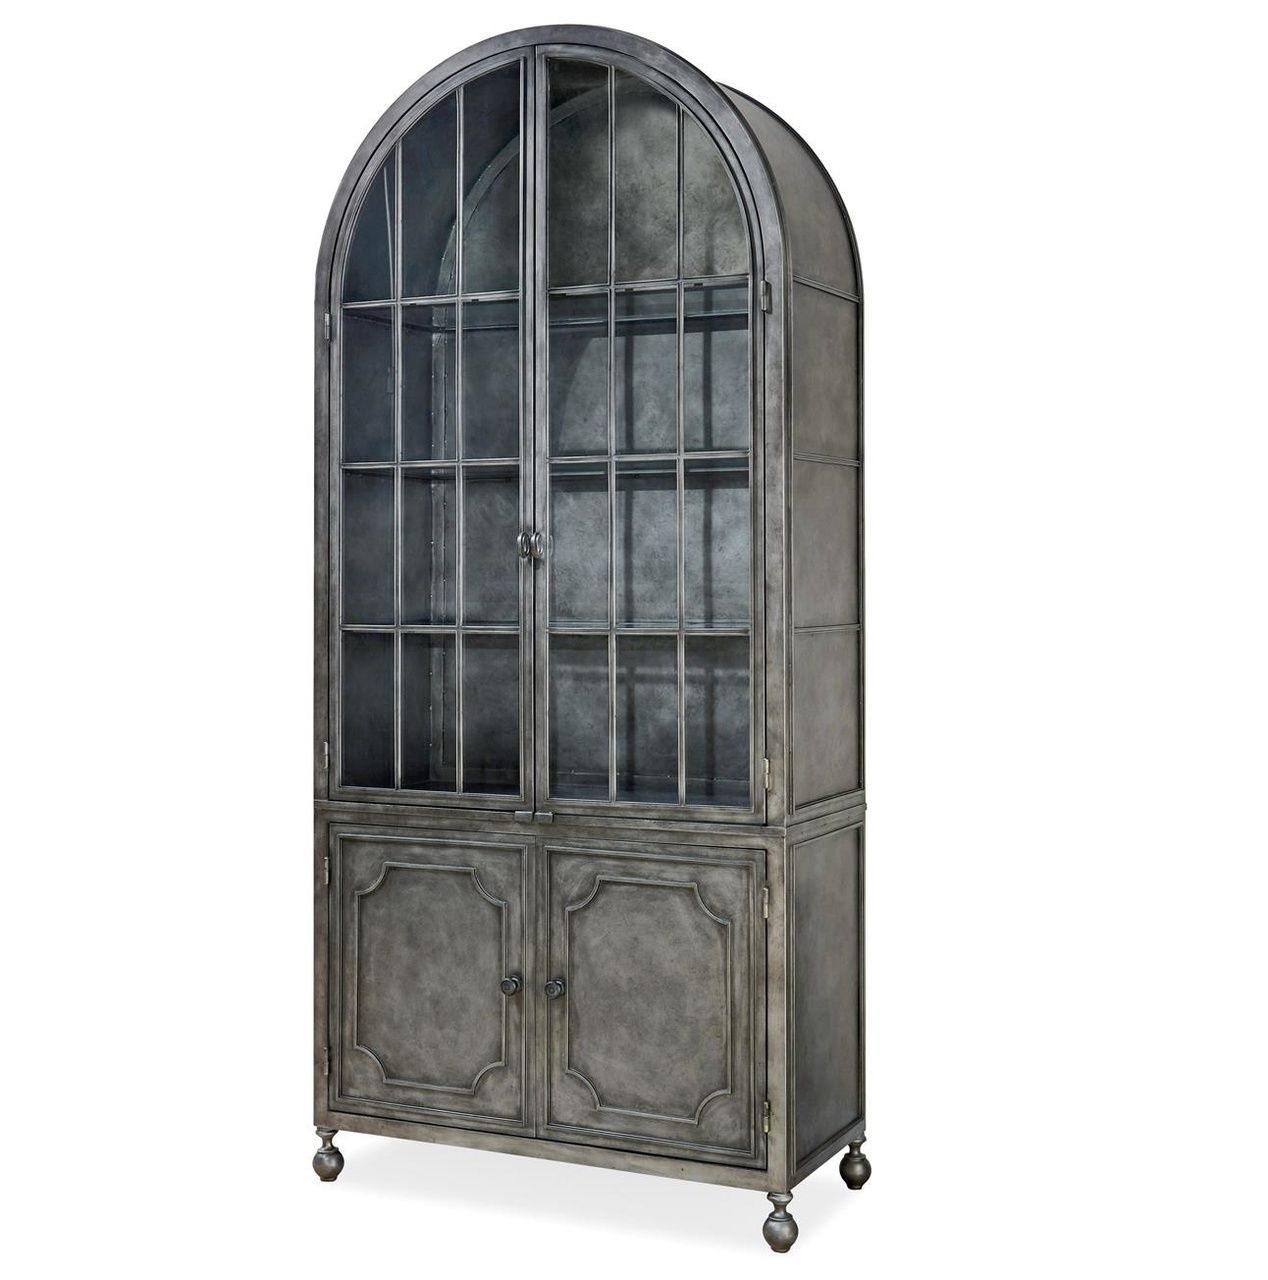 Maison French Industrial Metal Curio Display Cabinet Display Cabinet China Cabinet Corner China Cabinets